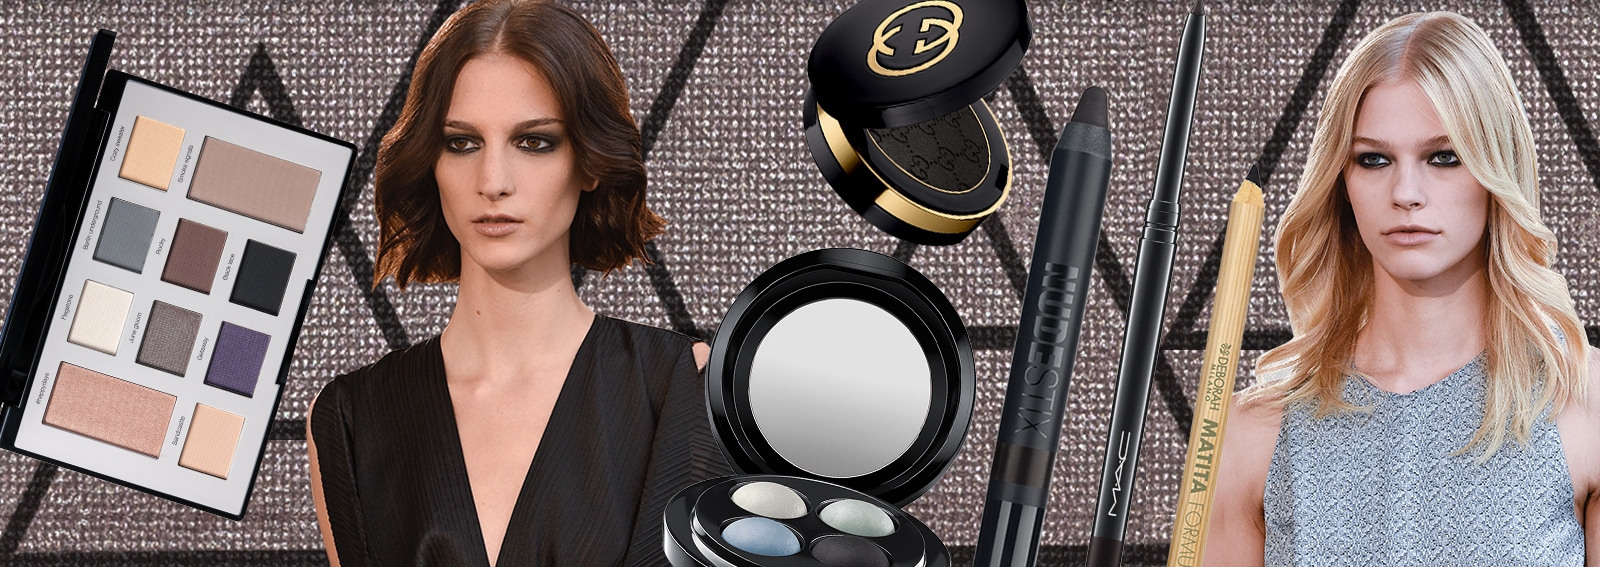 cover-smokey-eyes-nero-10-idee-desktop